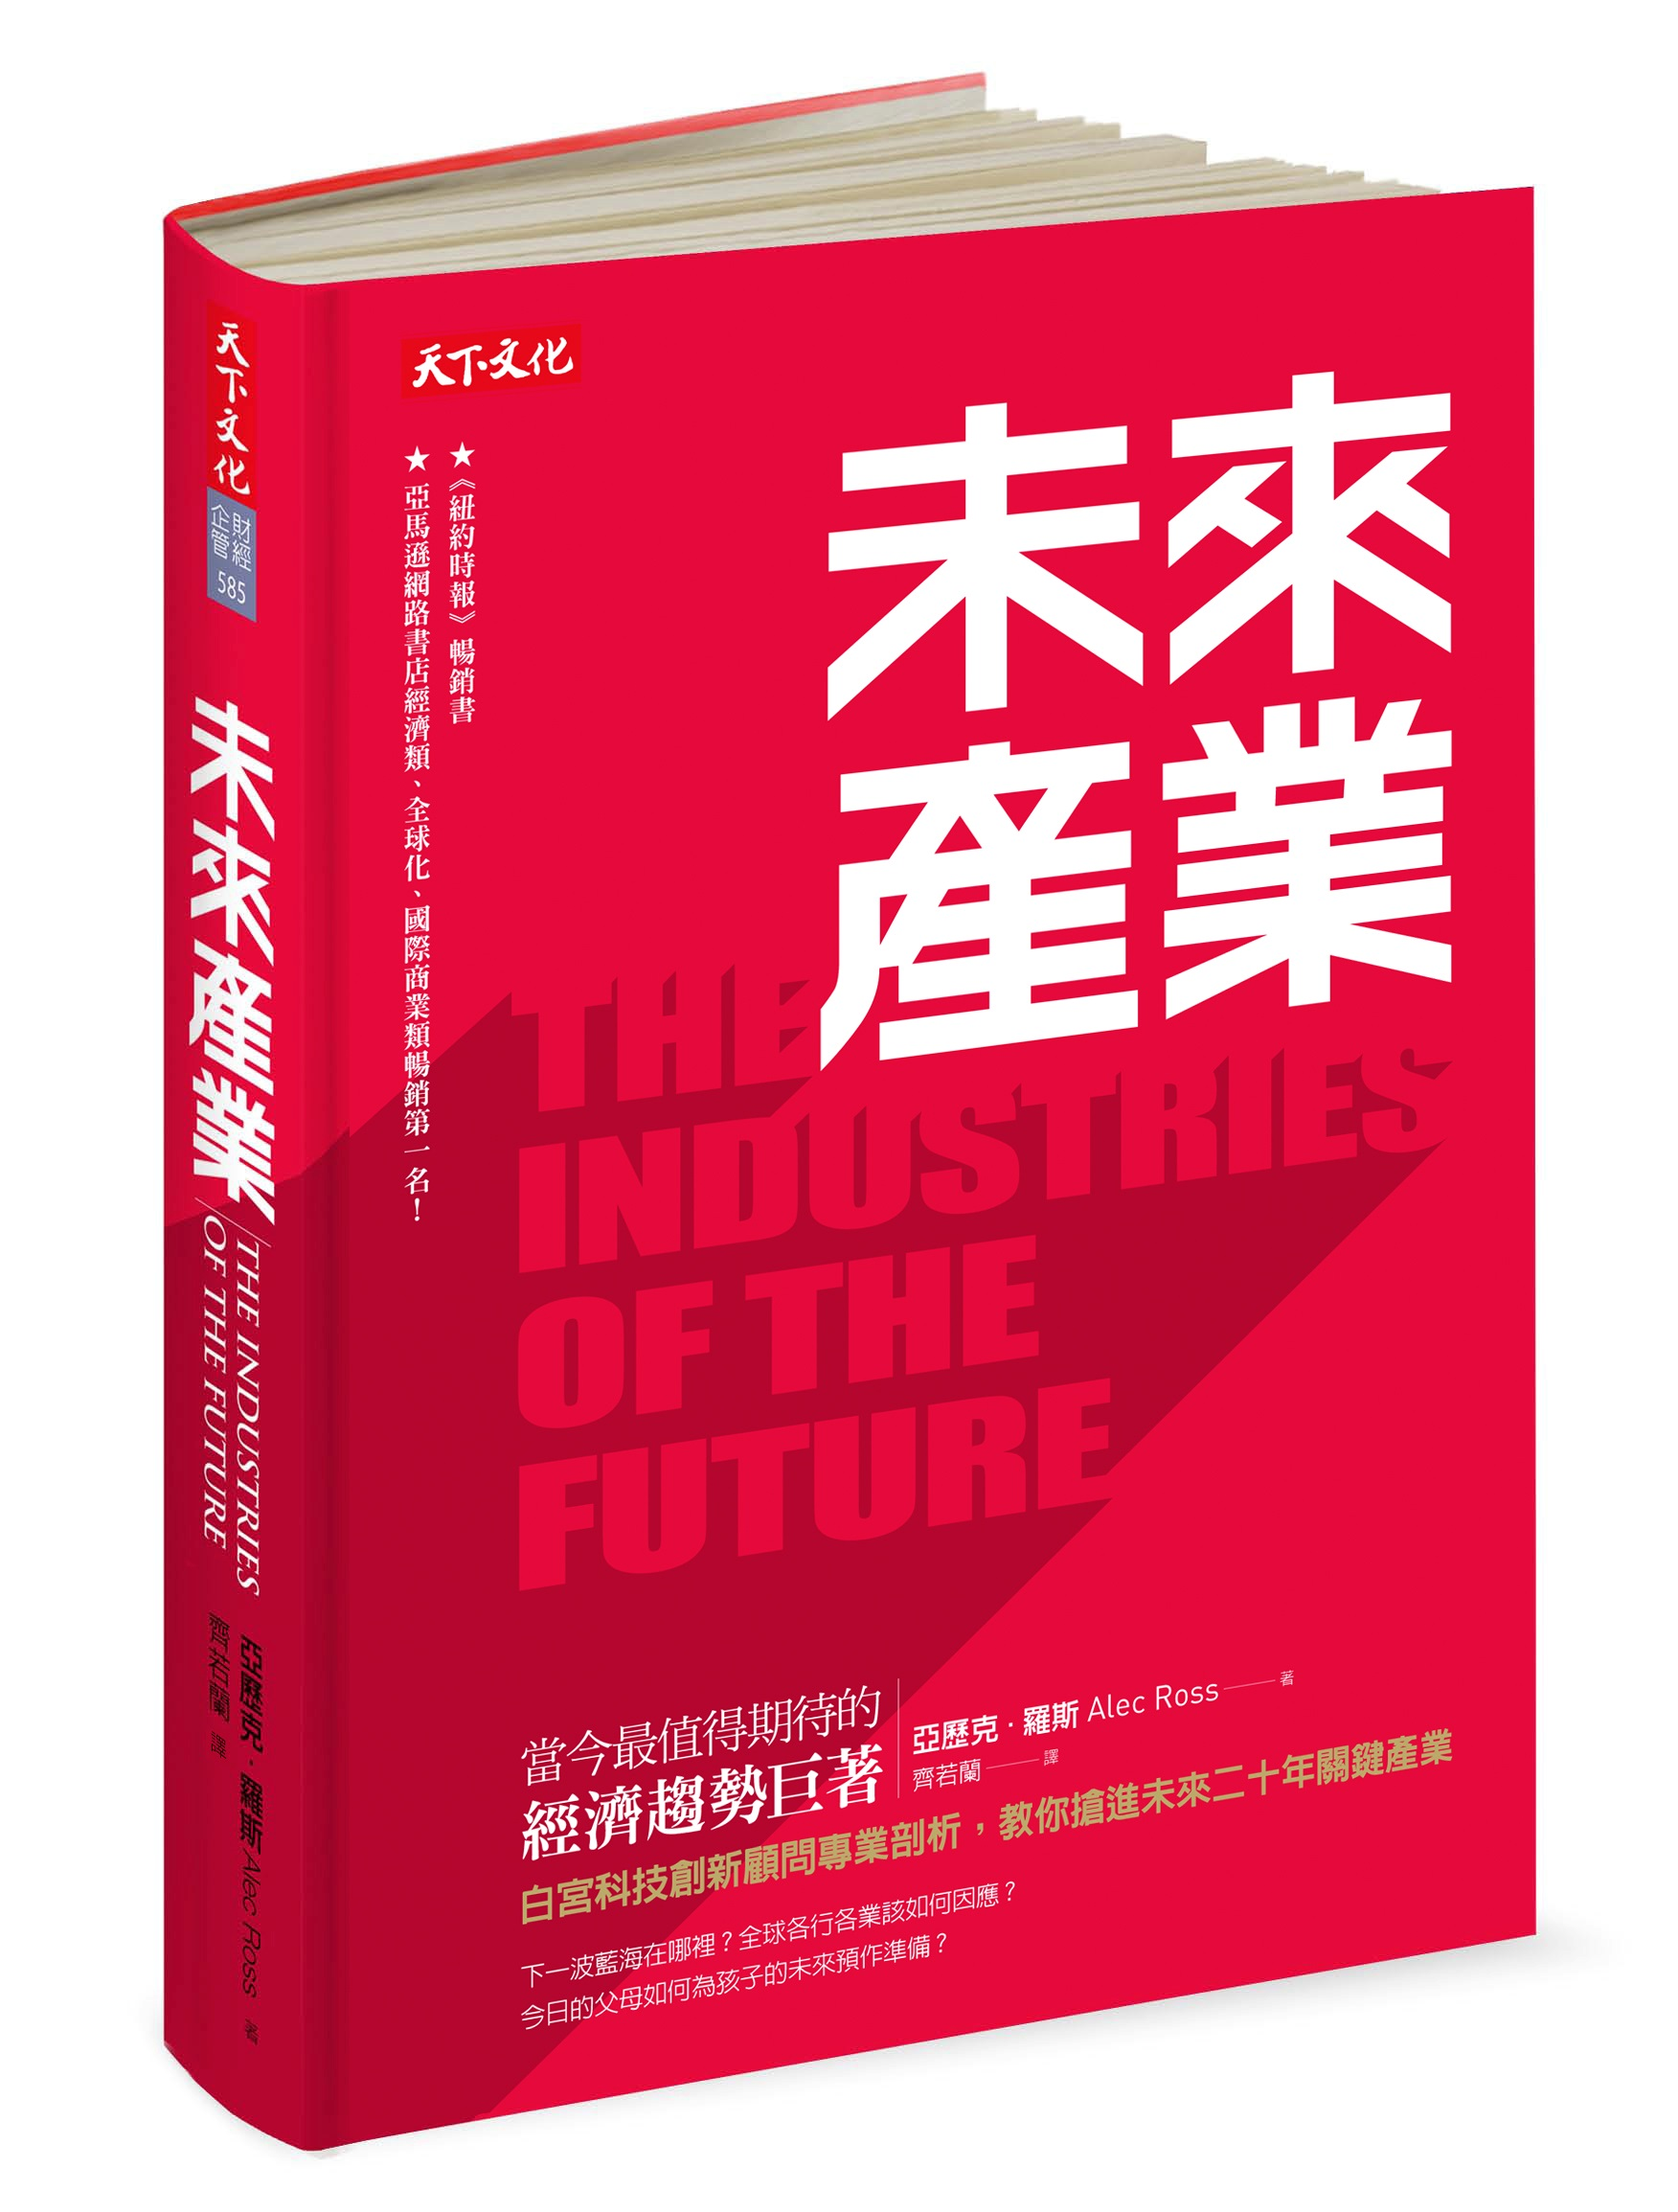 the-industries-of-the-future_book